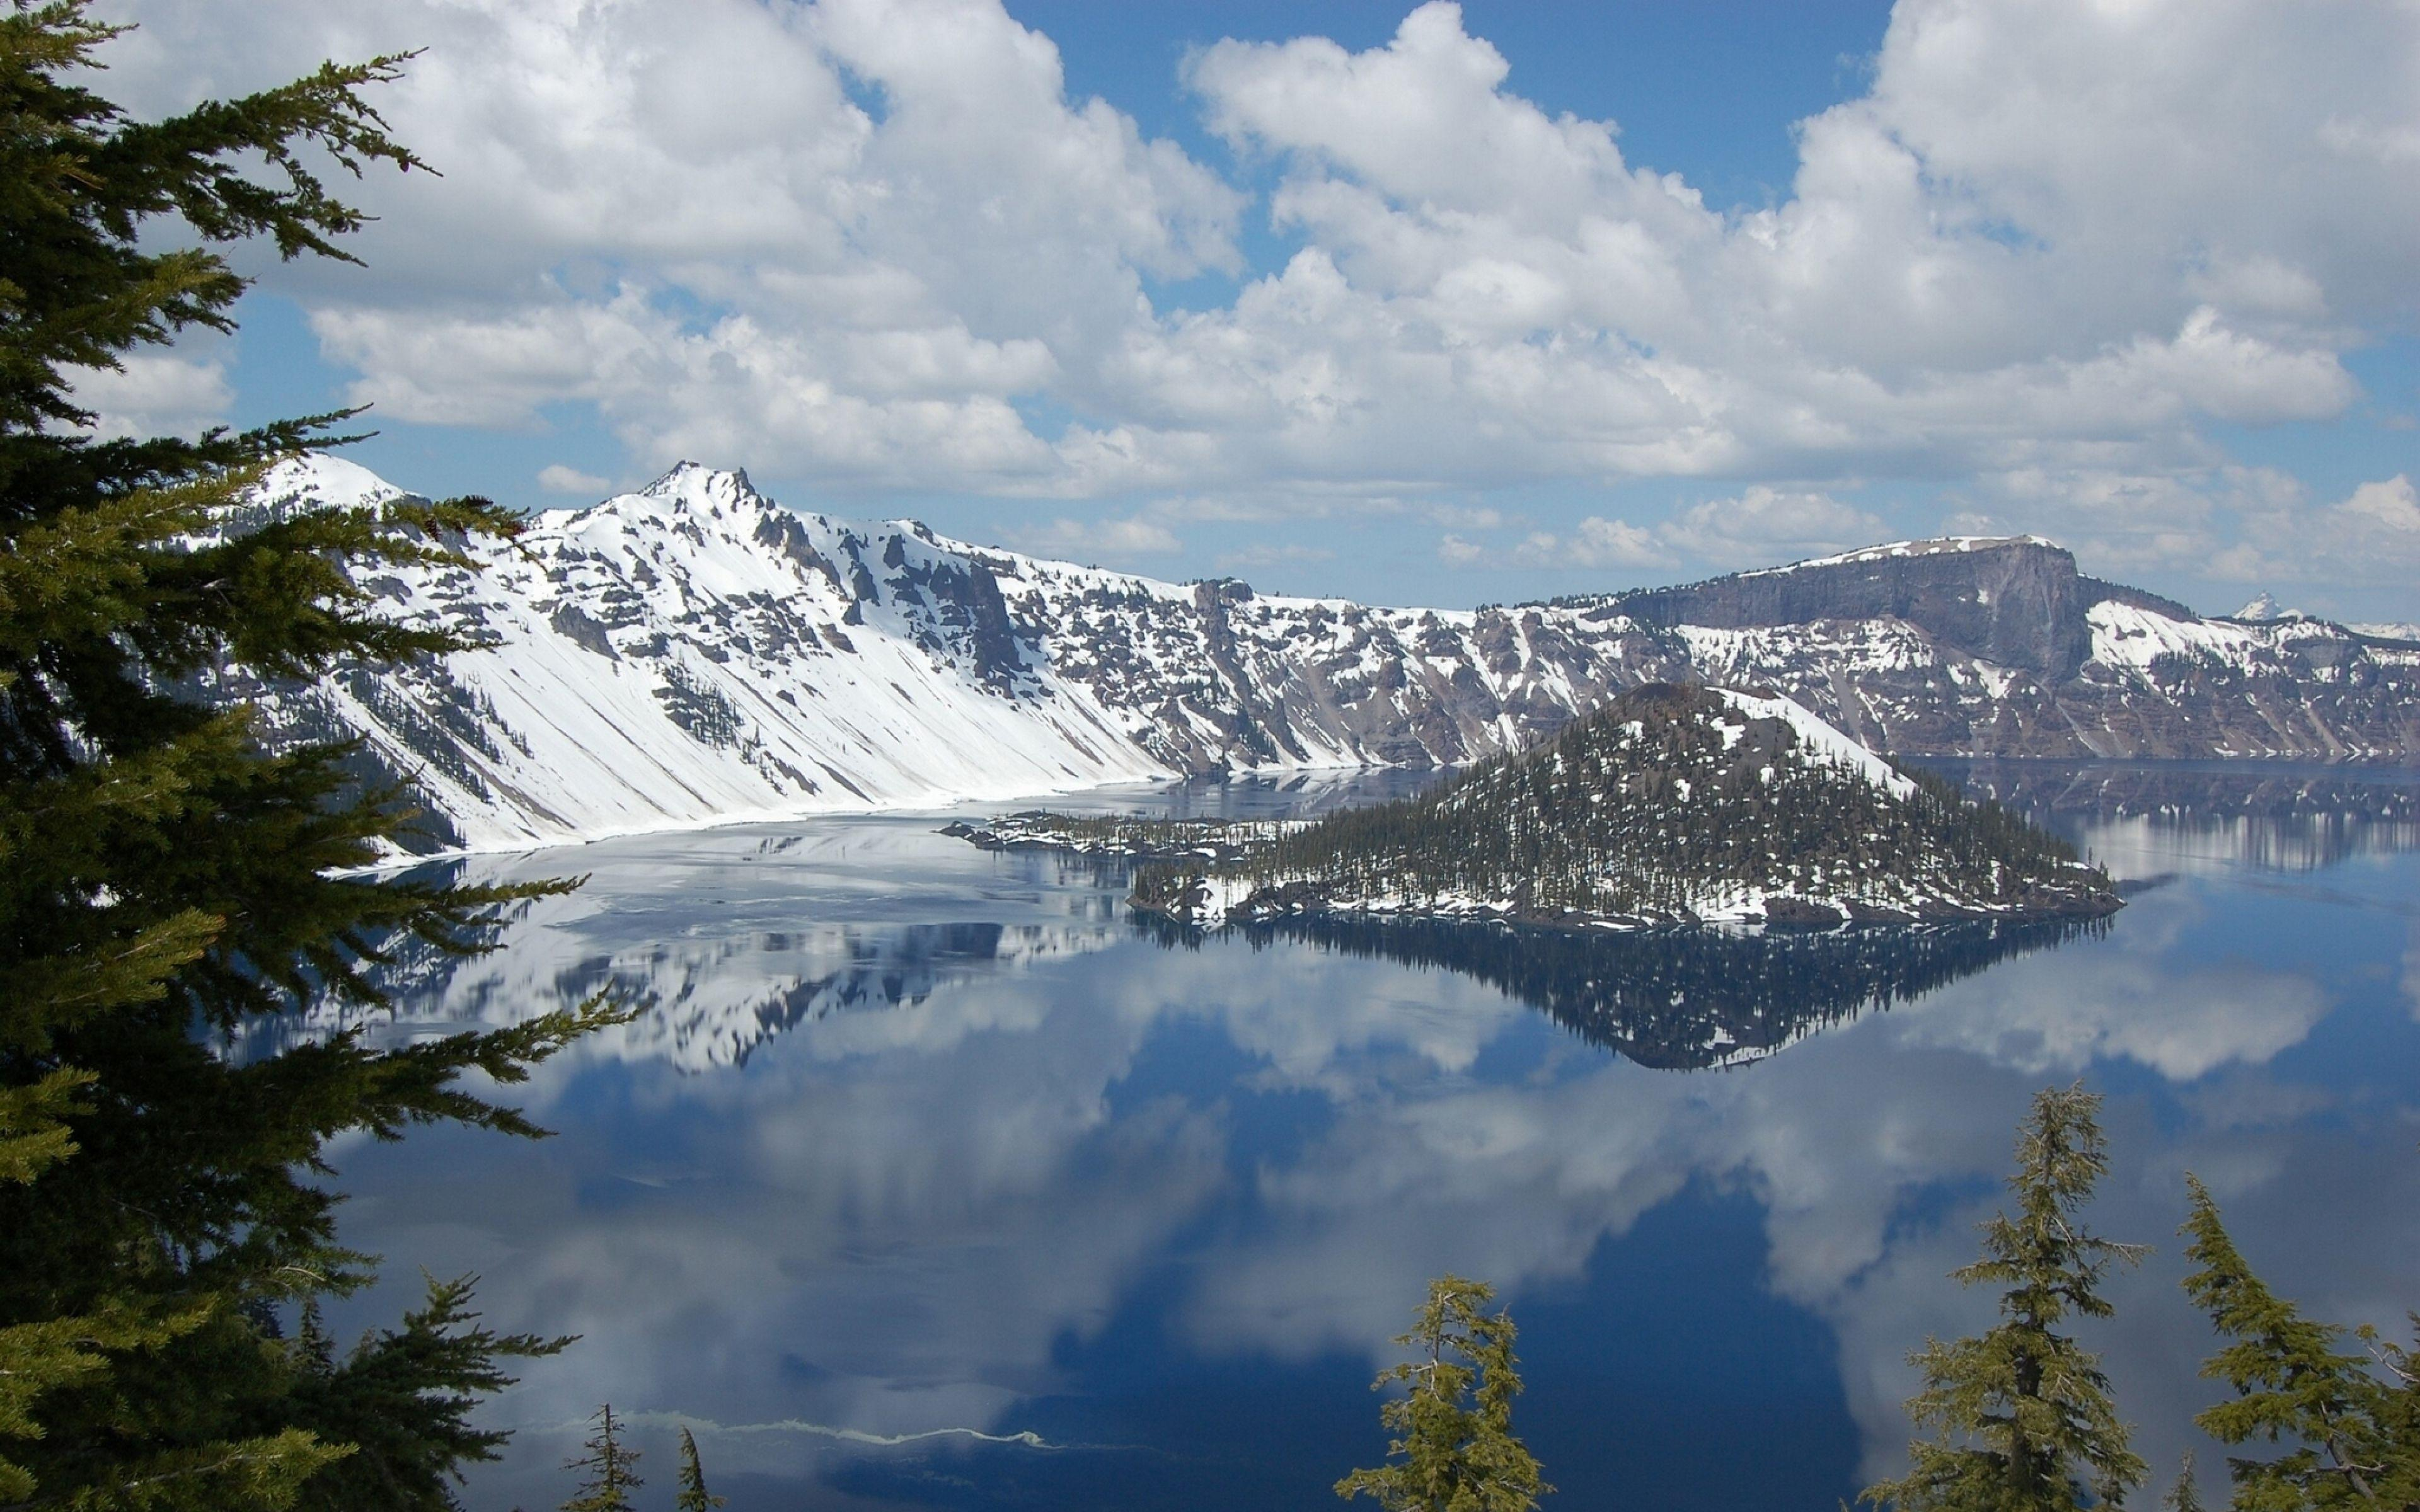 Download Wallpaper 3840x2400 Crater lake, National park, Oregon ...